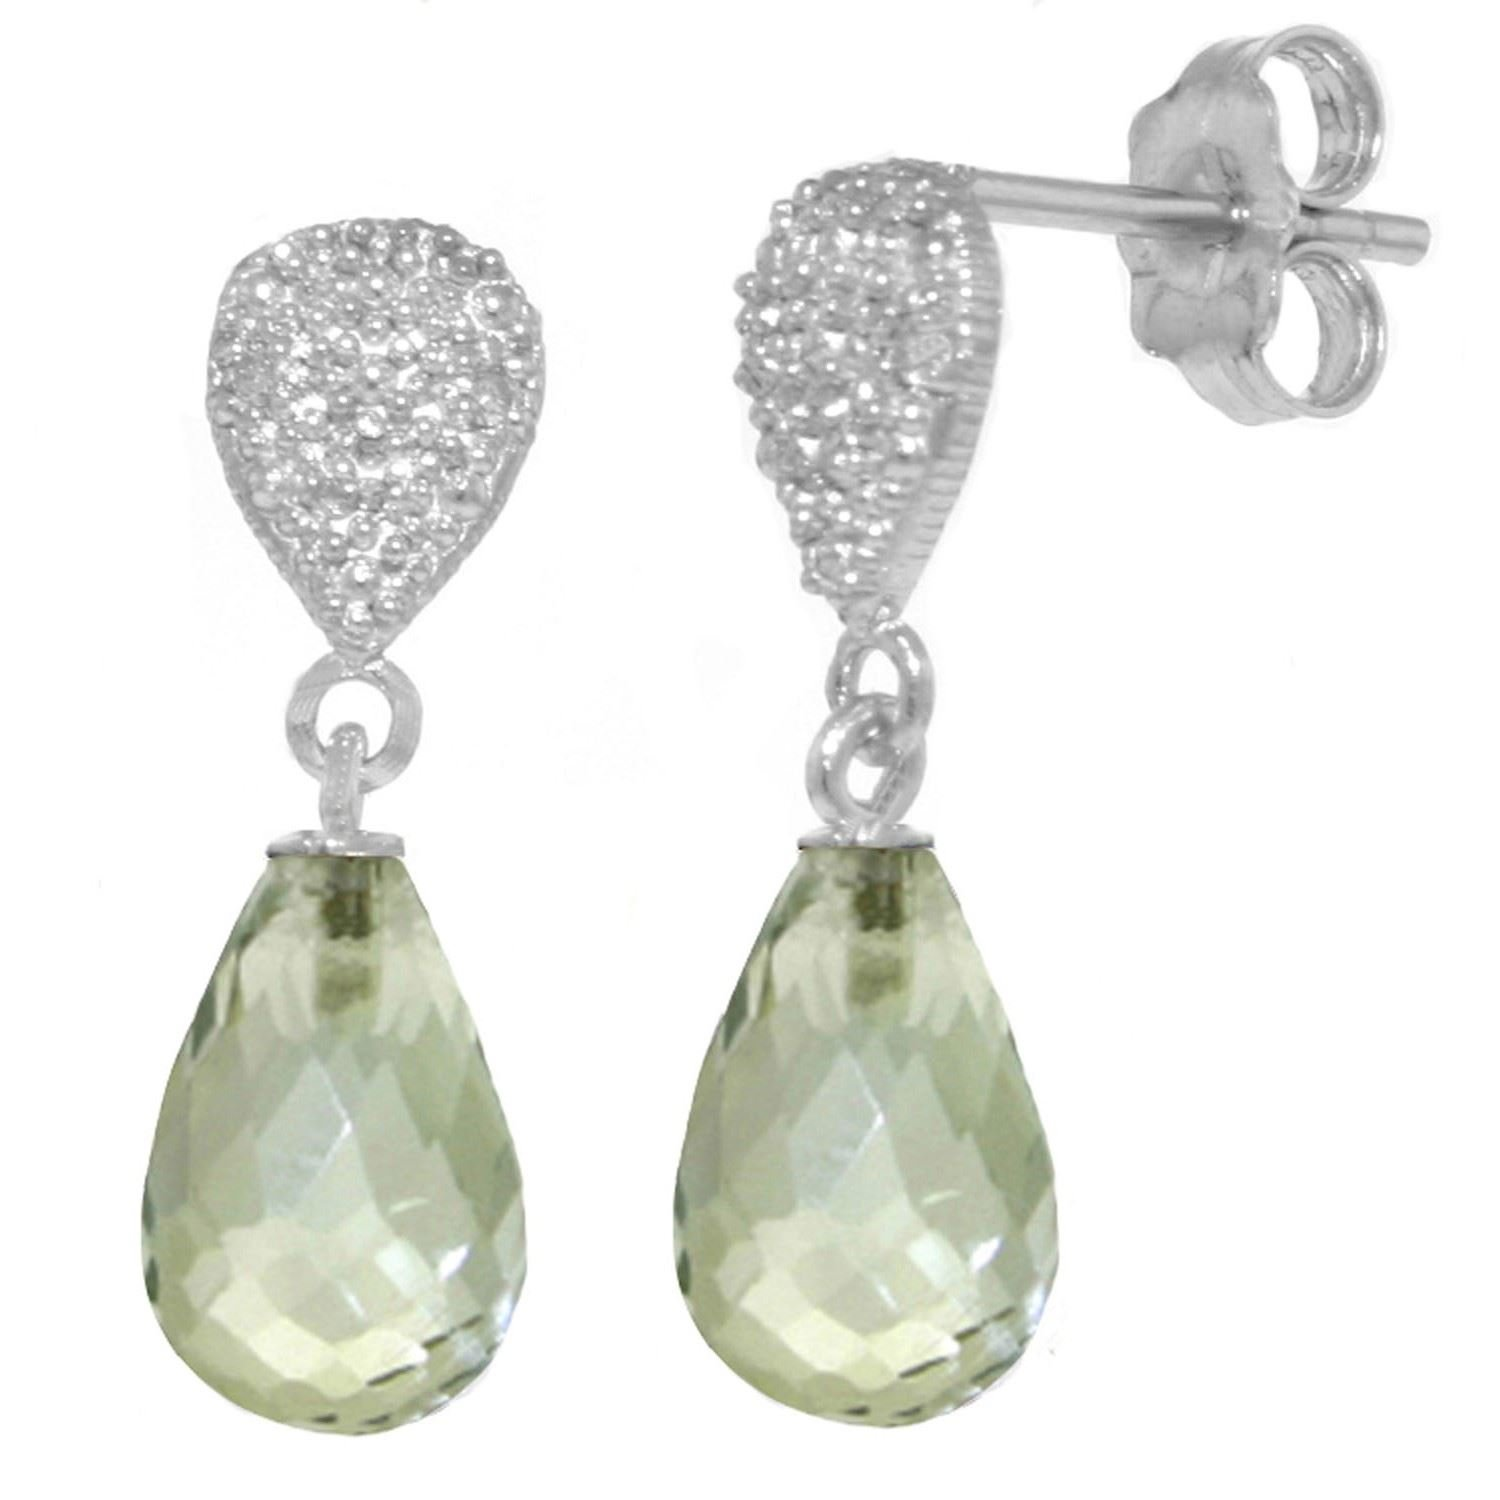 ALARRI 4.53 Carat 14K Solid White Gold Love Of All Loves Green Amethyst Earrings